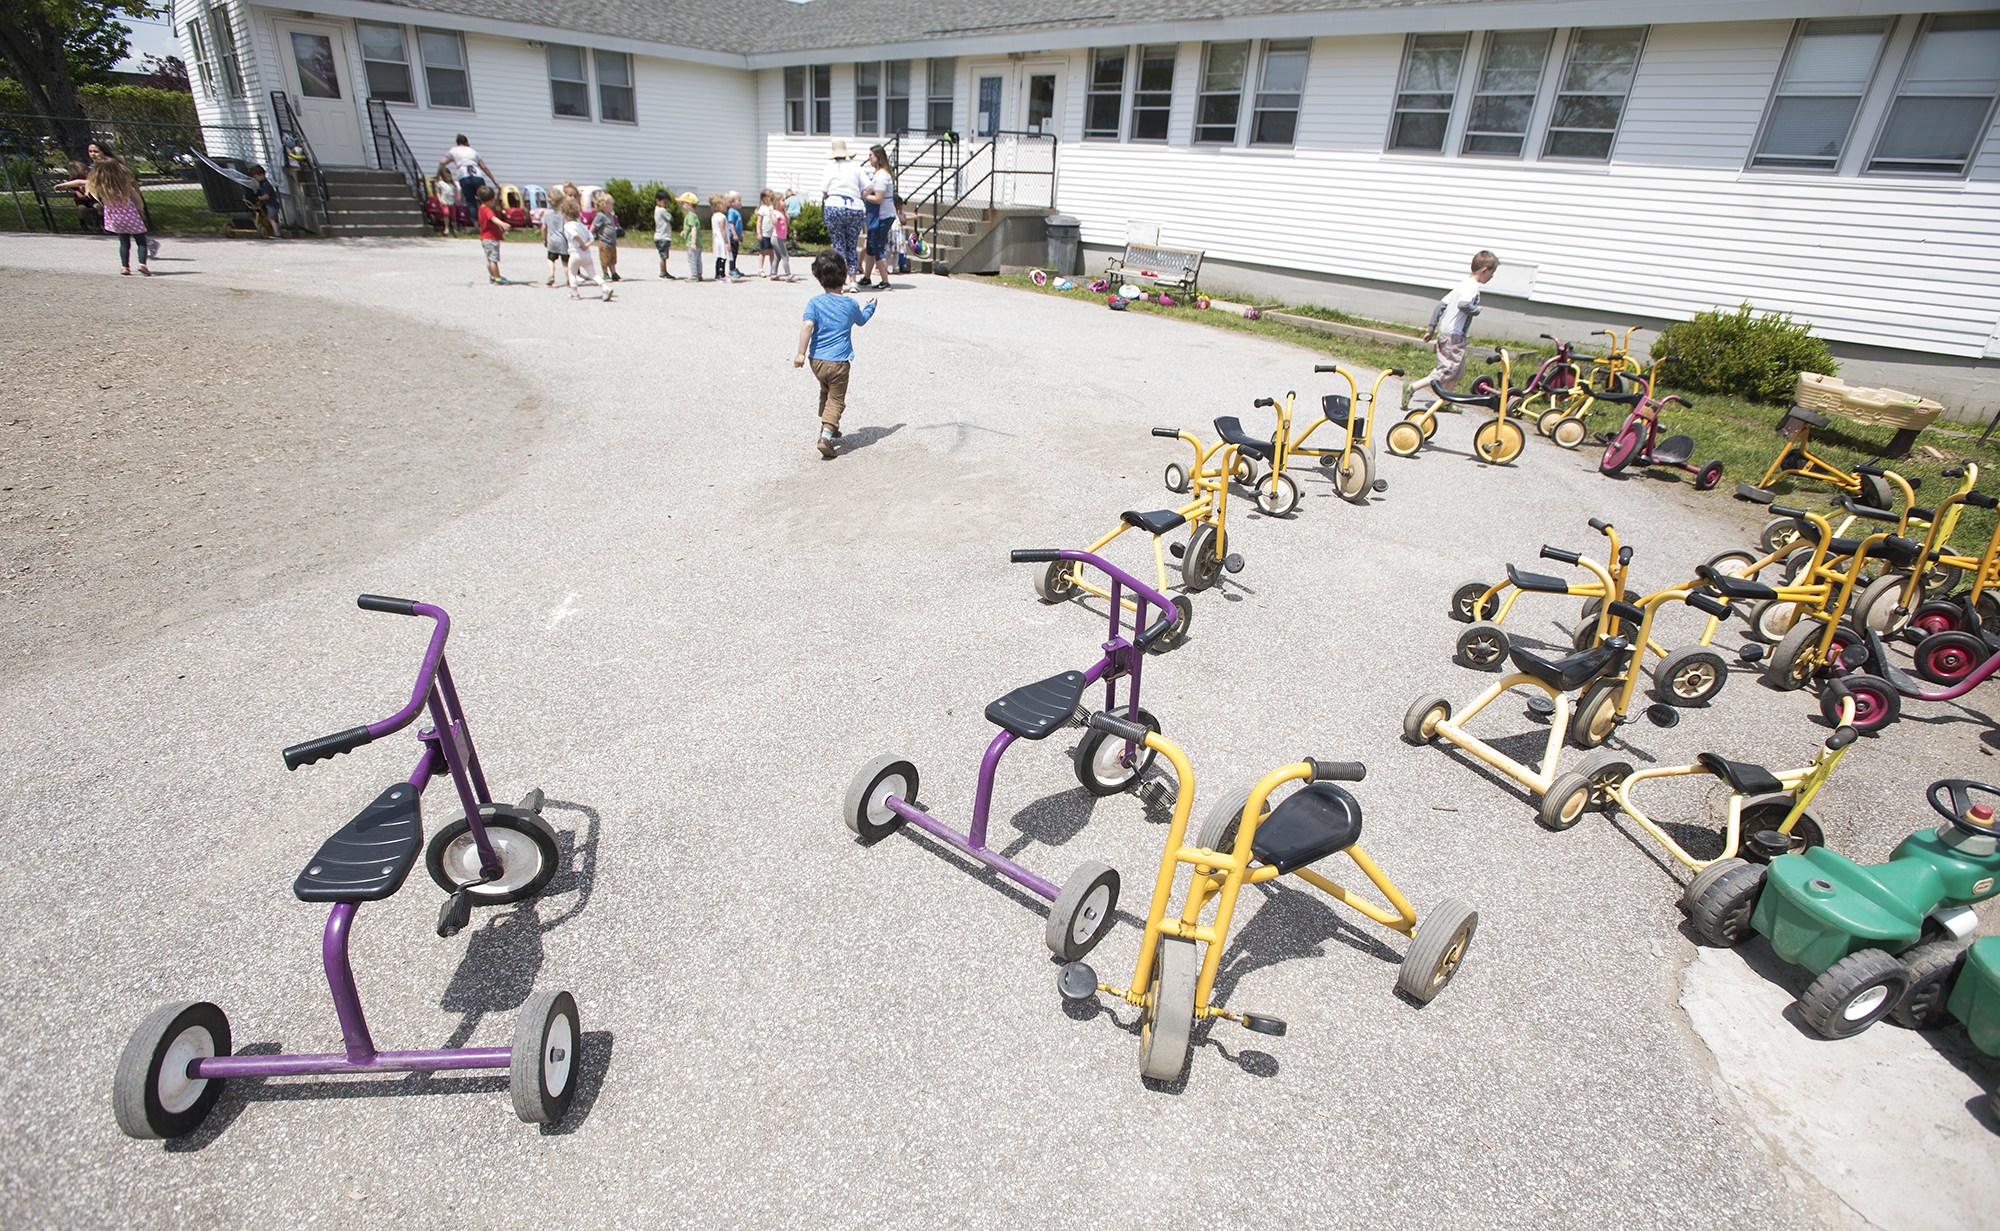 Toys litter the playground as children race to line up for lunch after playing outside at Parkside Children's Learning Center in Bangor in June. (Kevin Bennett photo for Maine Public)